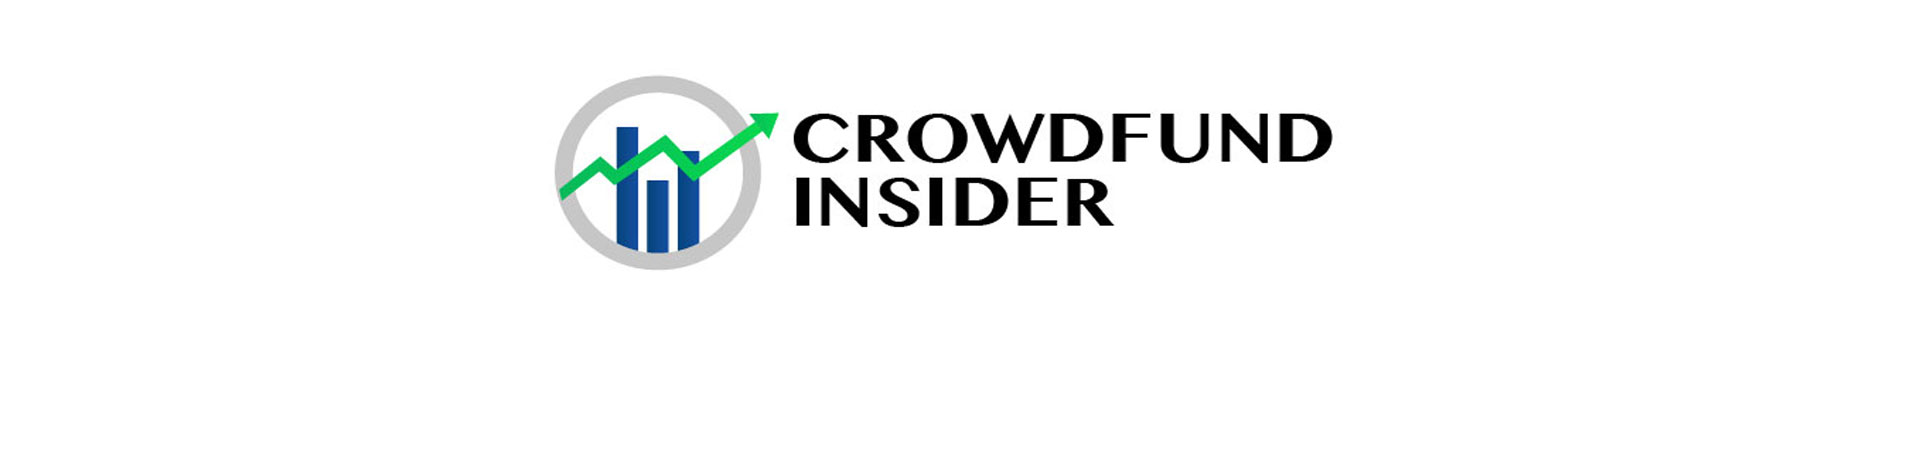 Crowdfund Insider: The Largest Equity Crowdfunding Event in the World: OurCrowd Plans Global Investor Summit